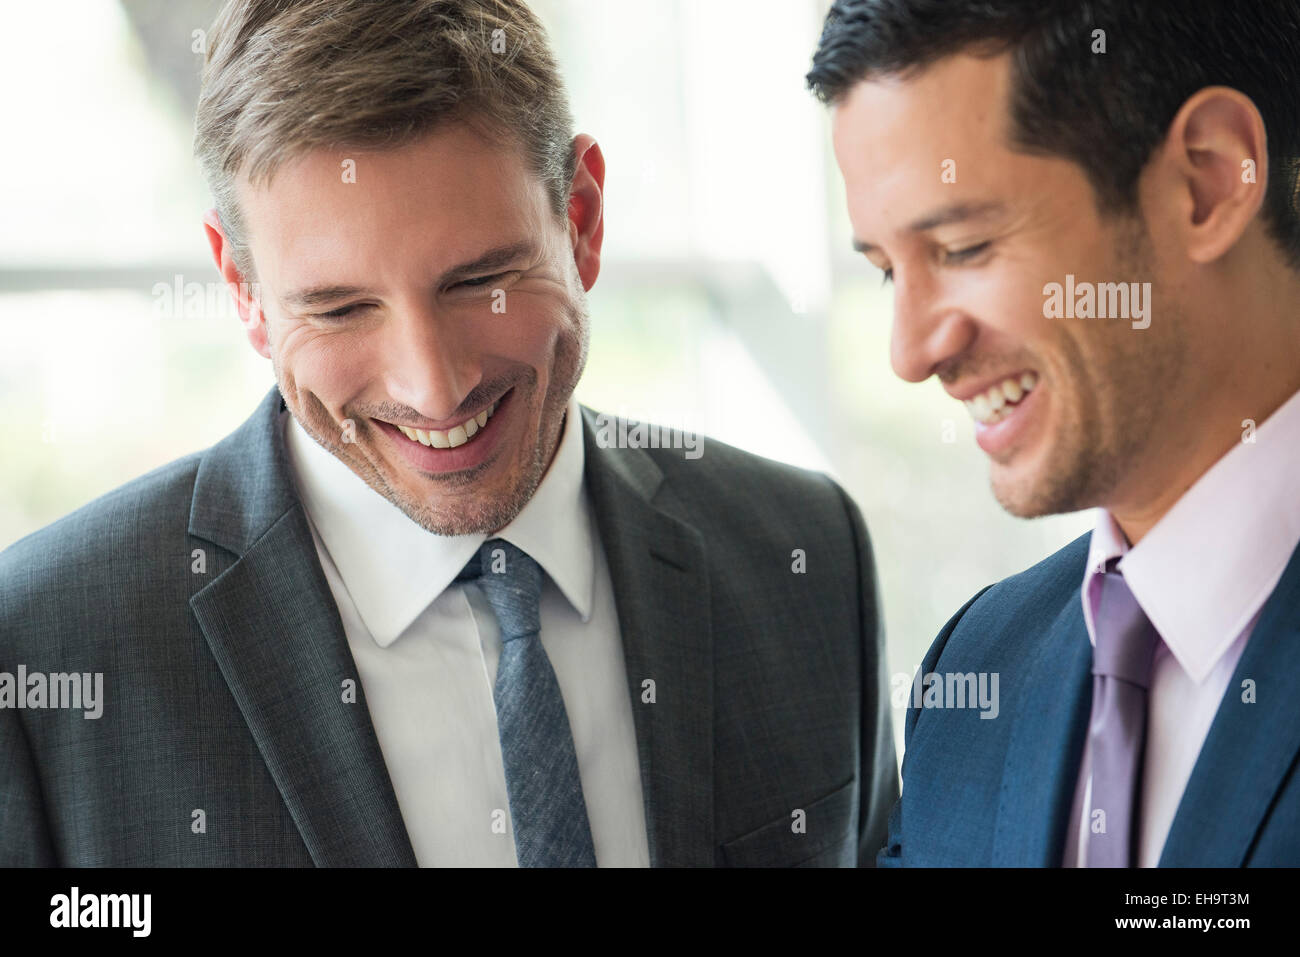 Businessmen talking and laughing together - Stock Image